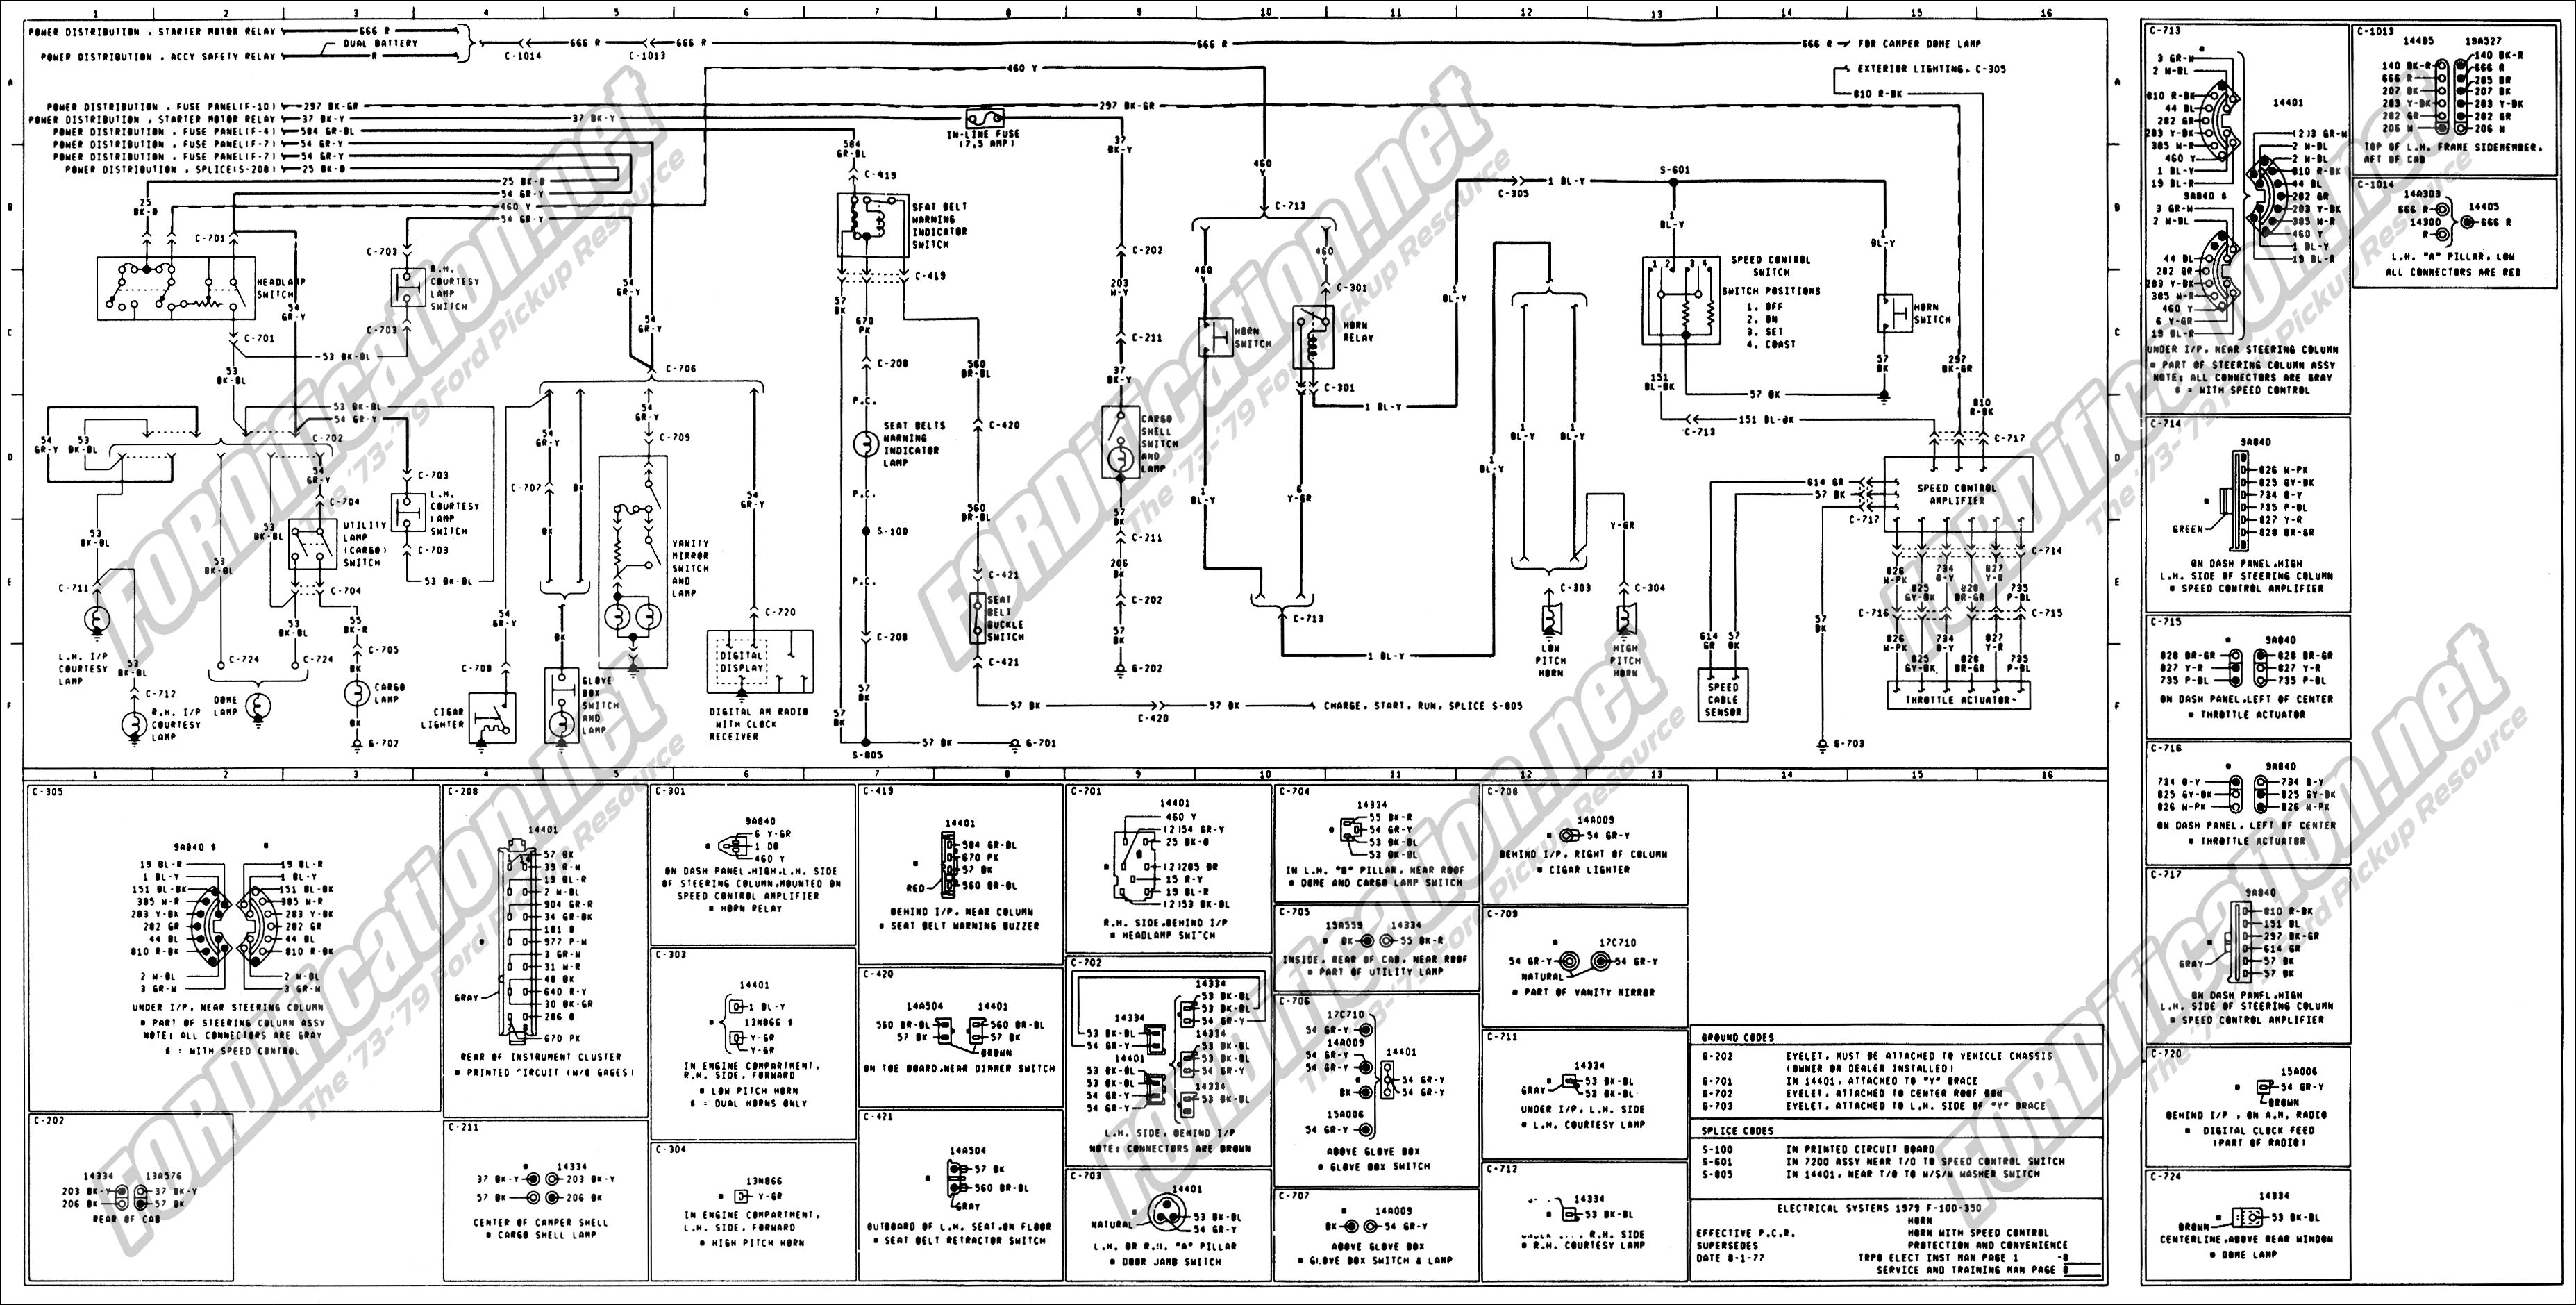 1973 1979 ford truck wiring diagrams schematics fordification net rh fordification net 1978 Ford F-150 Wiring Diagram 1978 Ford F-250 Wiring Diagram